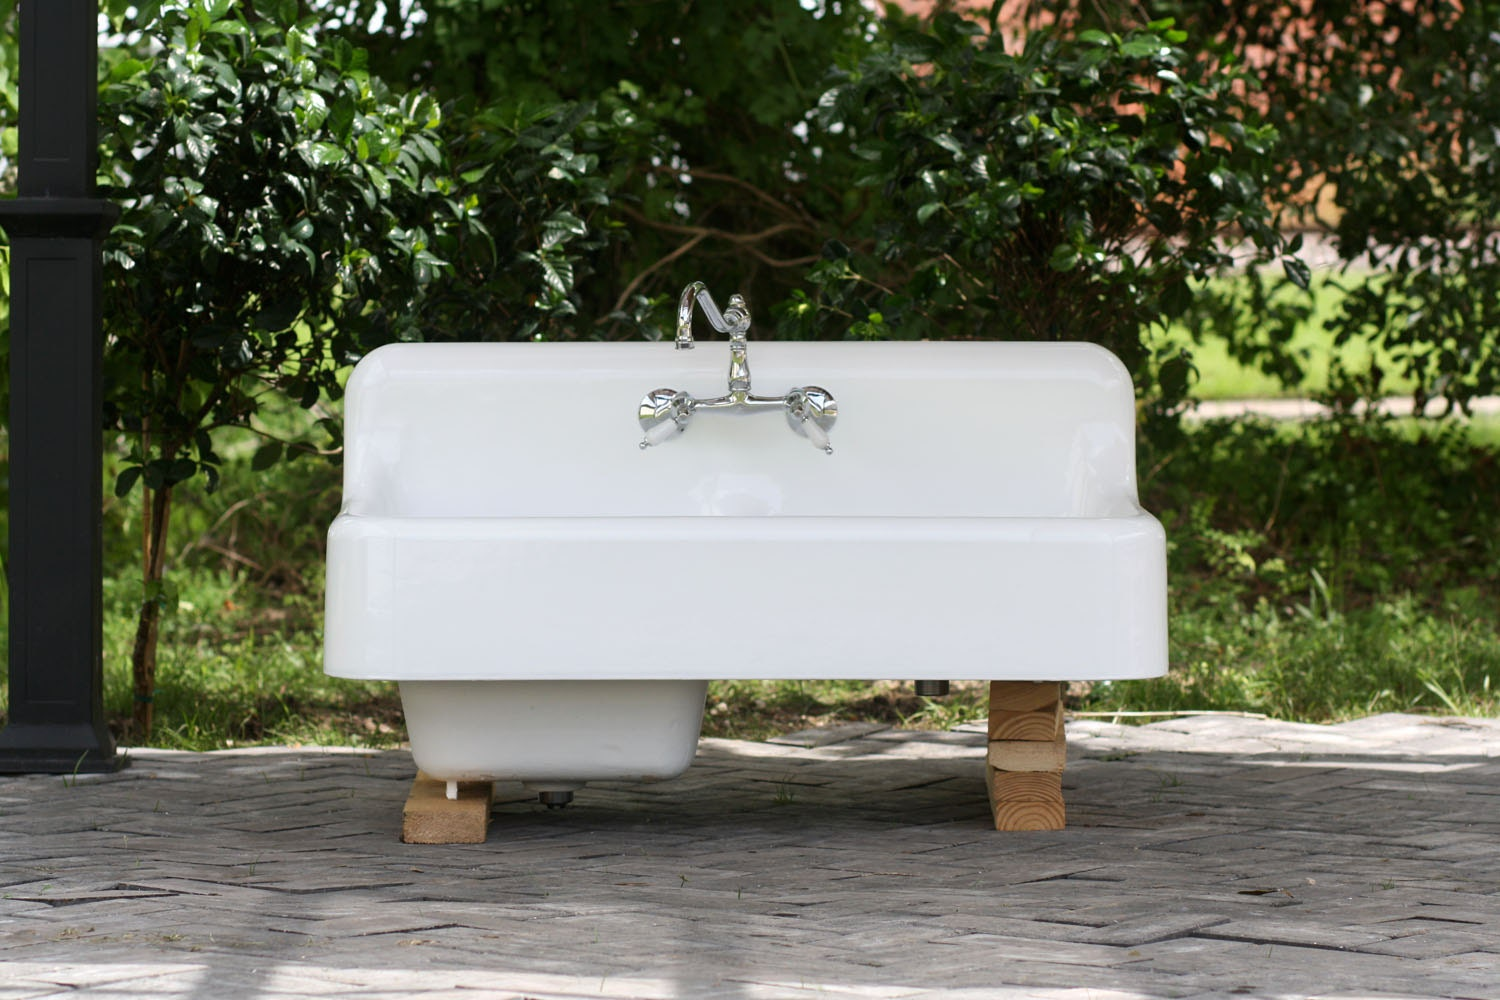 Porcelain Farm Sink : 42 Refinished 1920 Cast Iron Farm Sink Porcelain by readytore